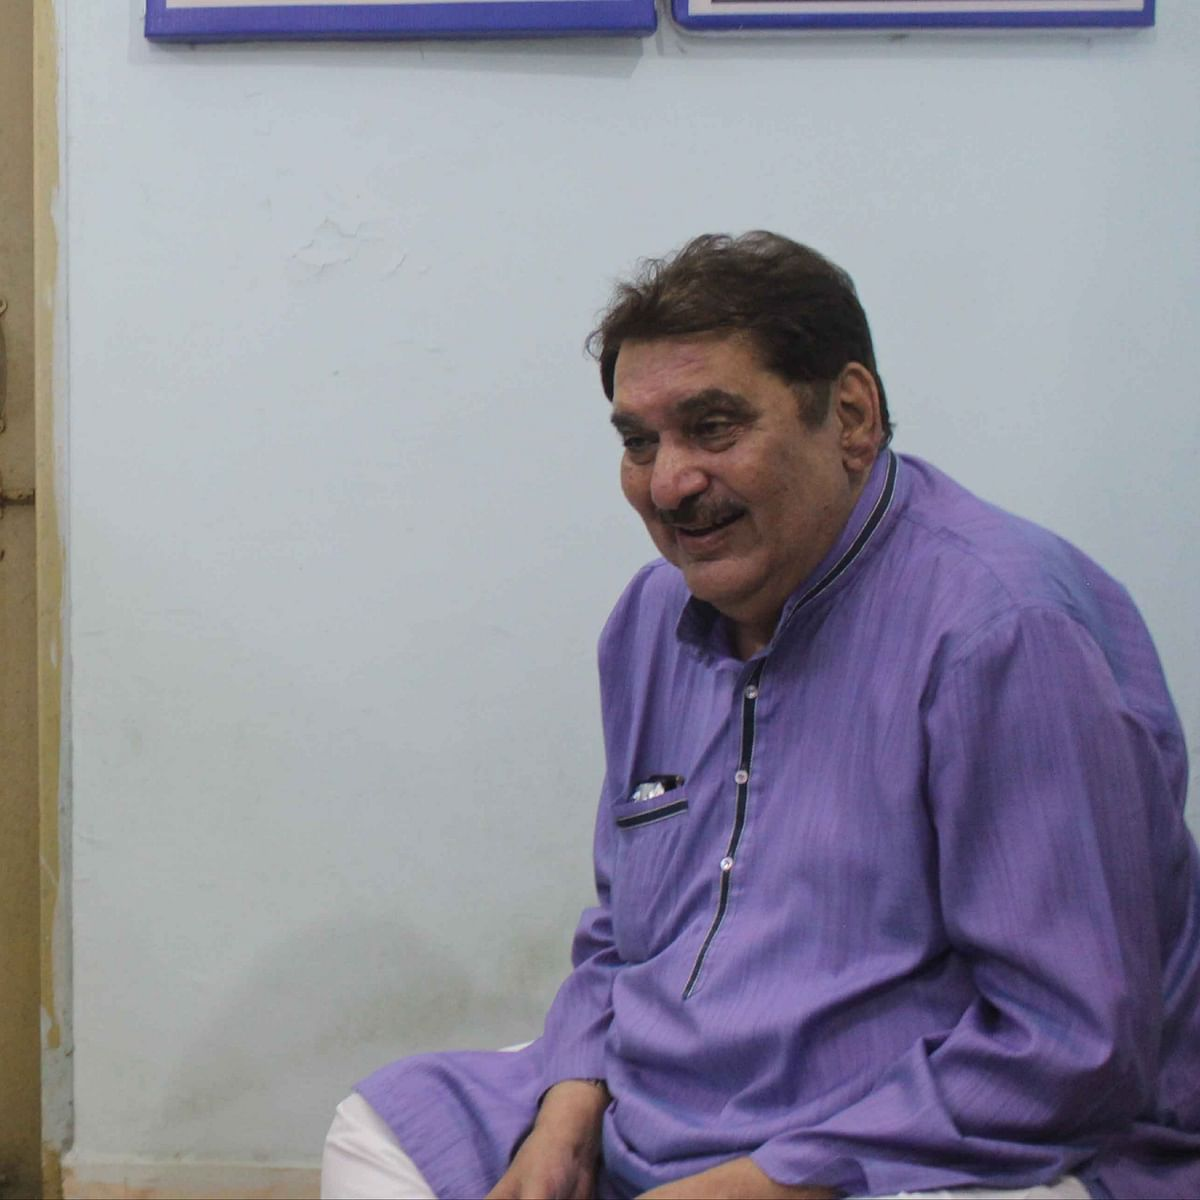 Pyare Miya Housing Society Scam: I don't know sex racket accused, says actor Raza Murad